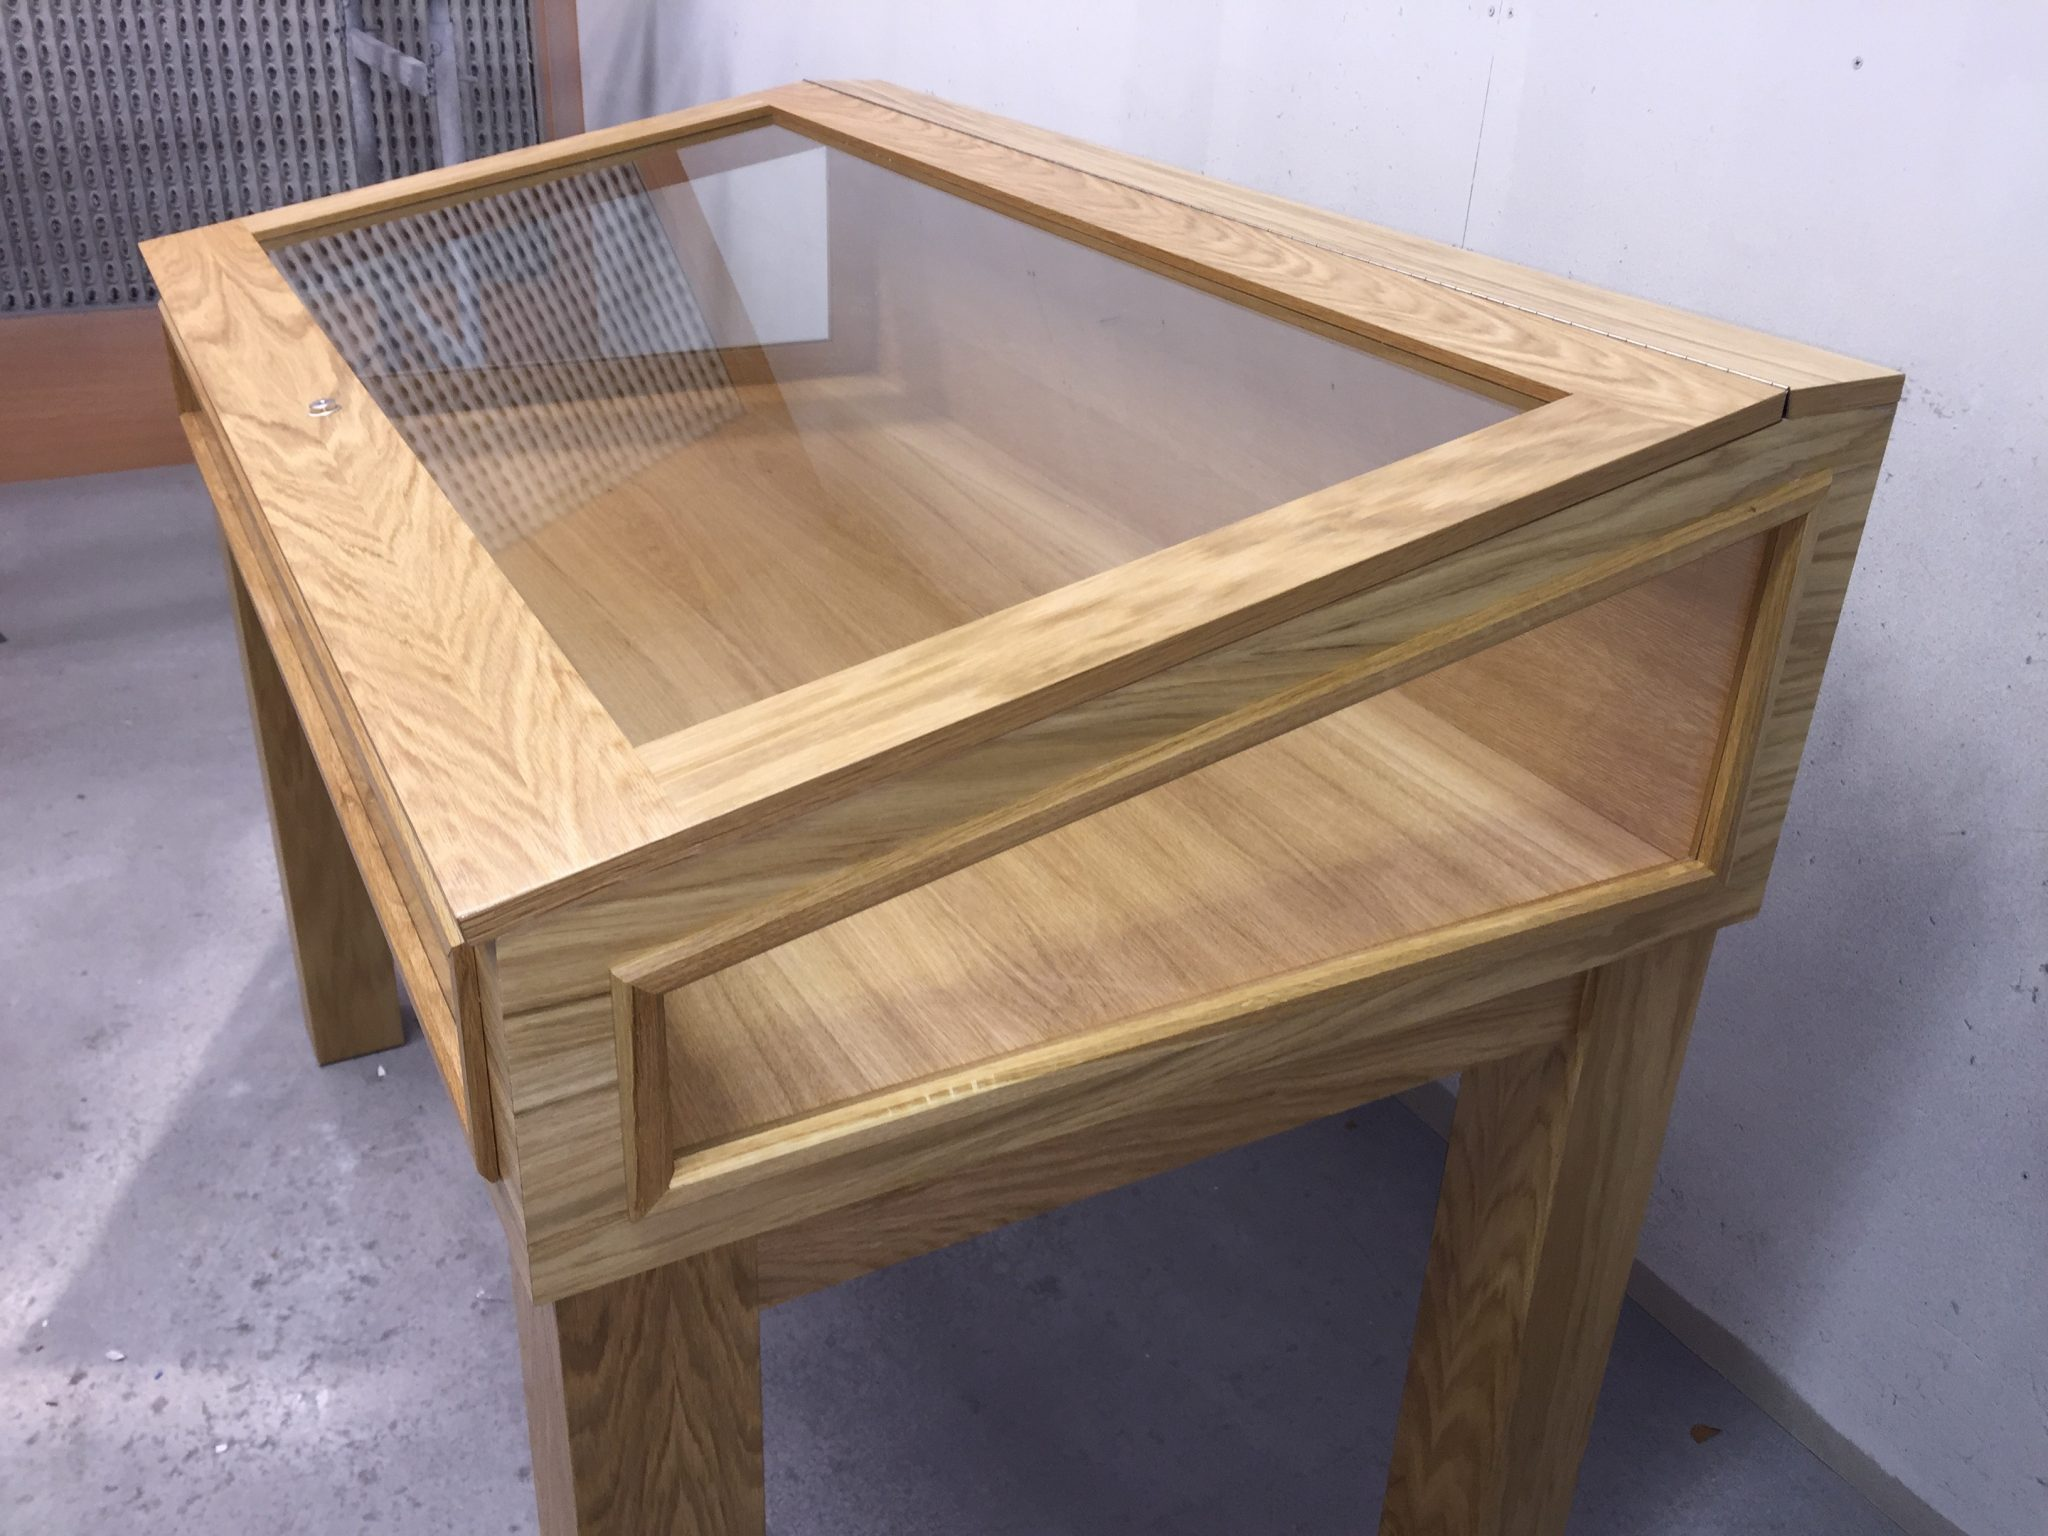 Glass display case cabinet in Oak, ideal for book display